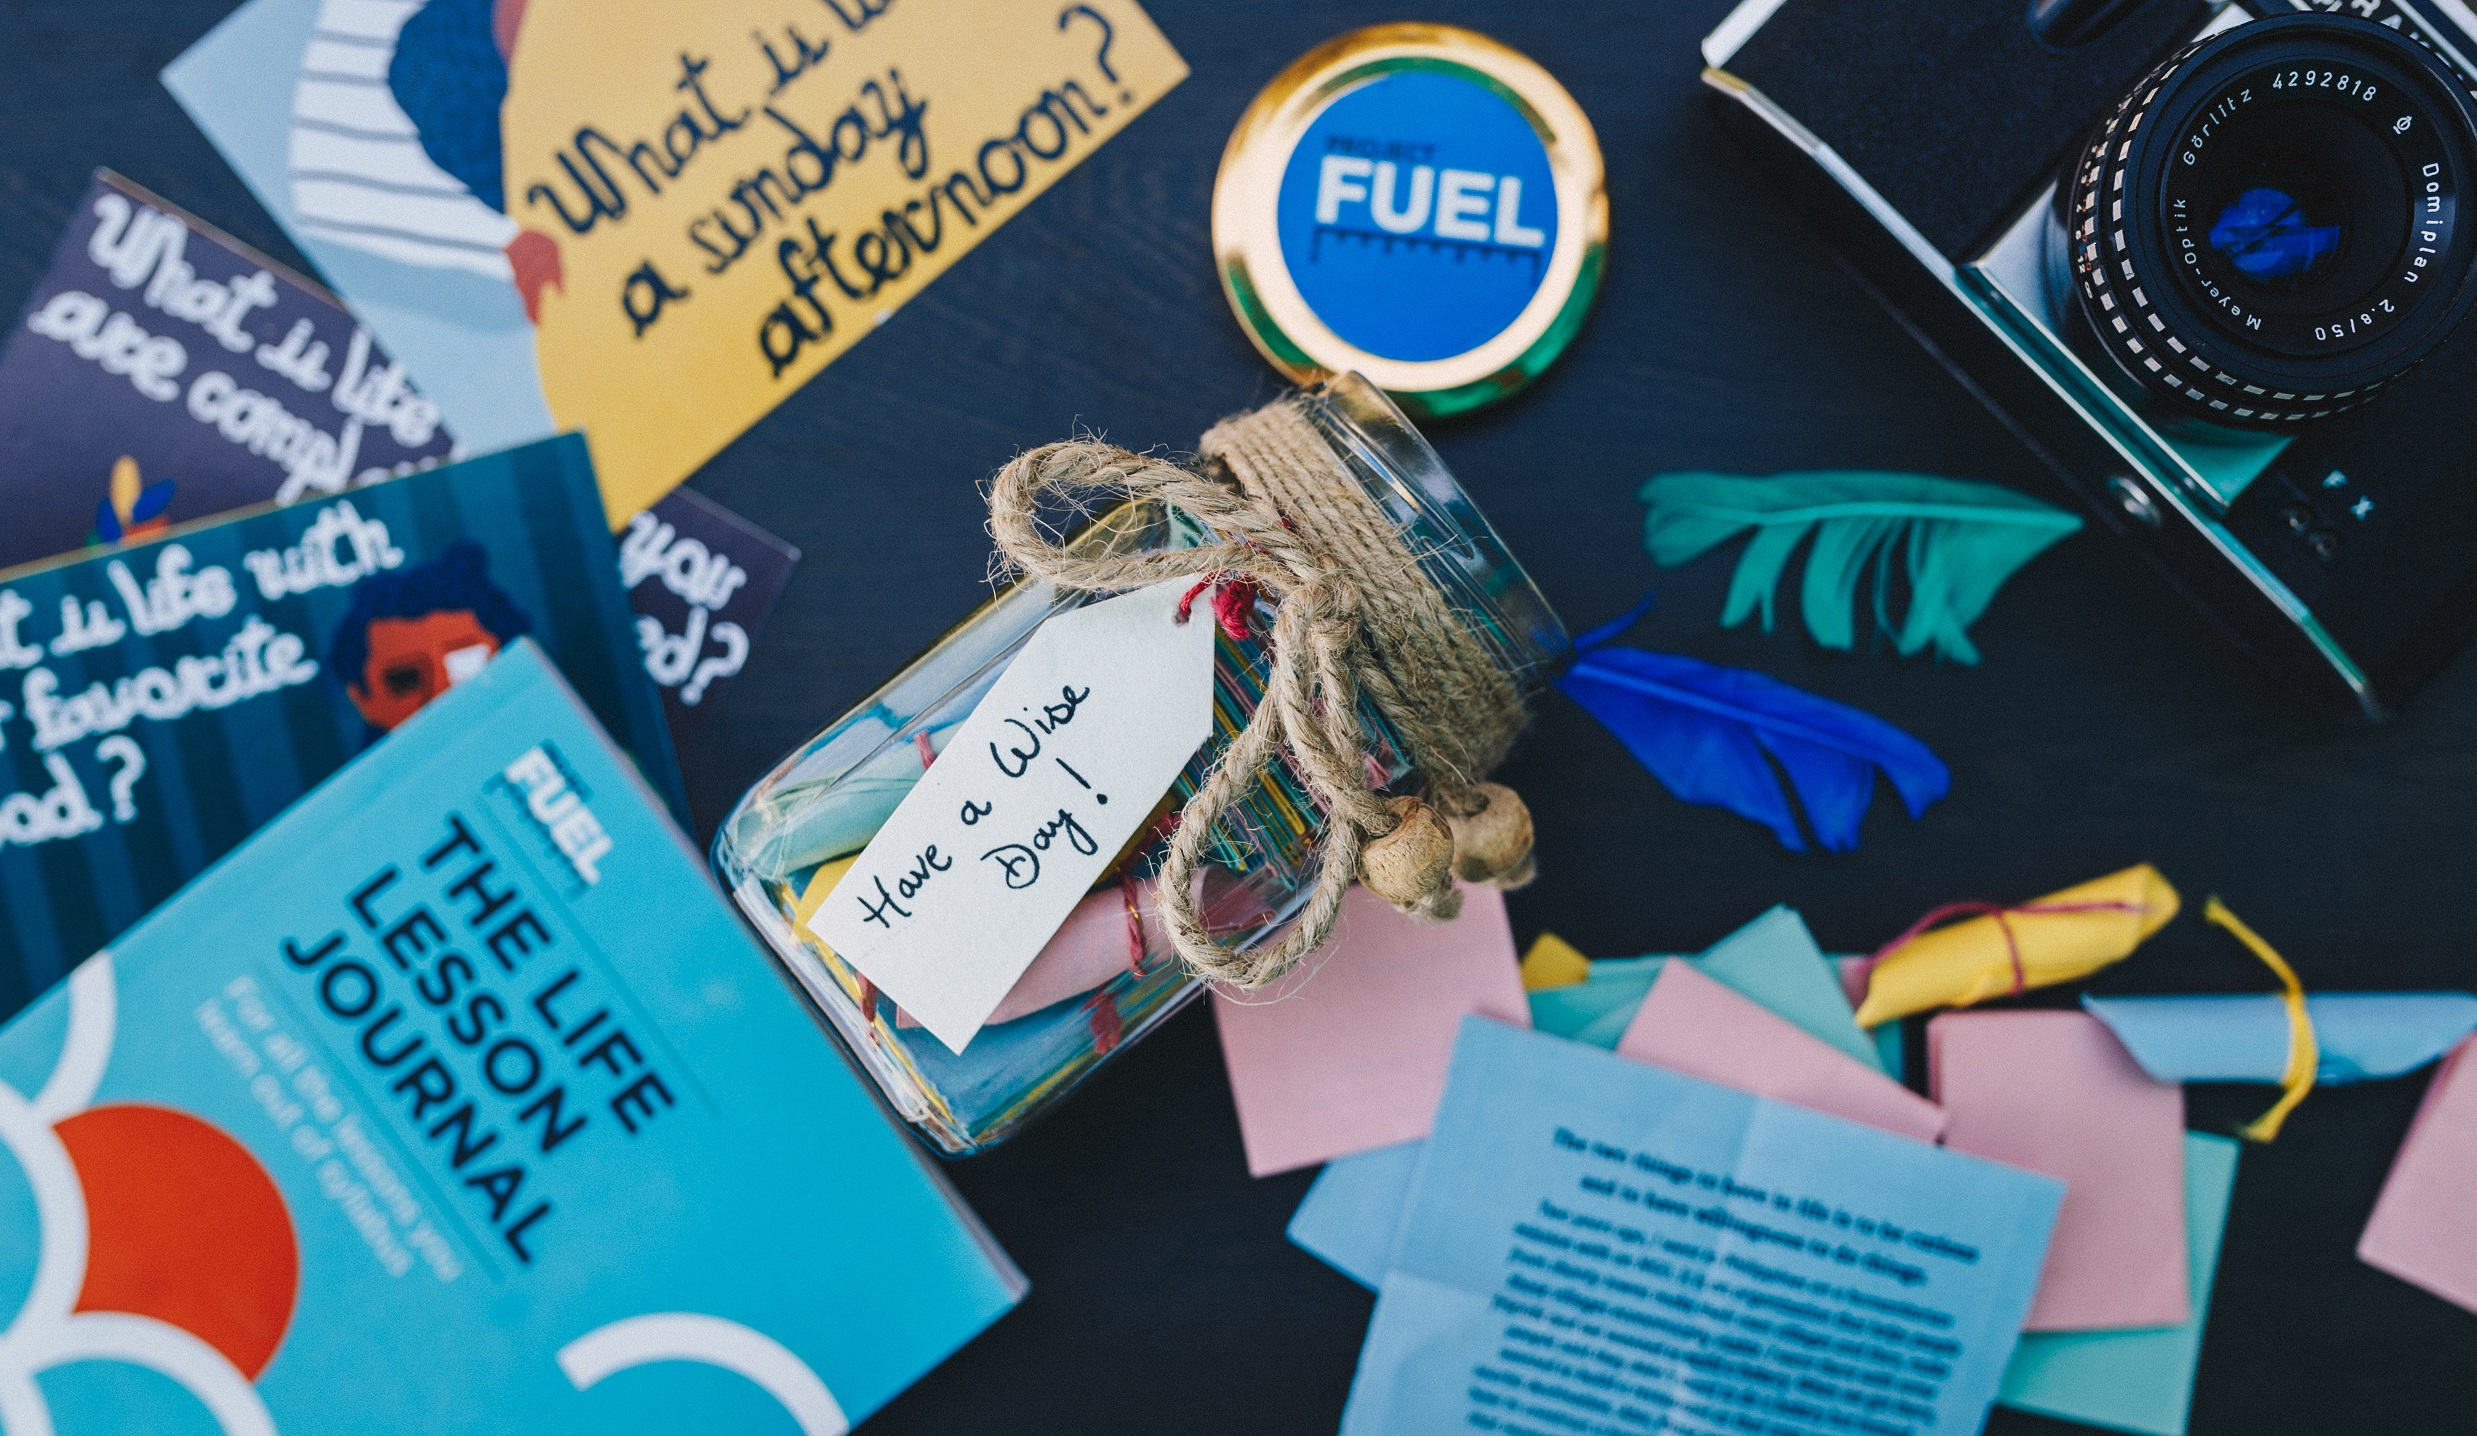 Project FUEL, Life Lessons Jar, The Life Lesson Journal (For Adults), The Life Lesson Journal (For Students), What is lIfe? Postcards, Wisdom pins, FUEL Wisfom Manifesto